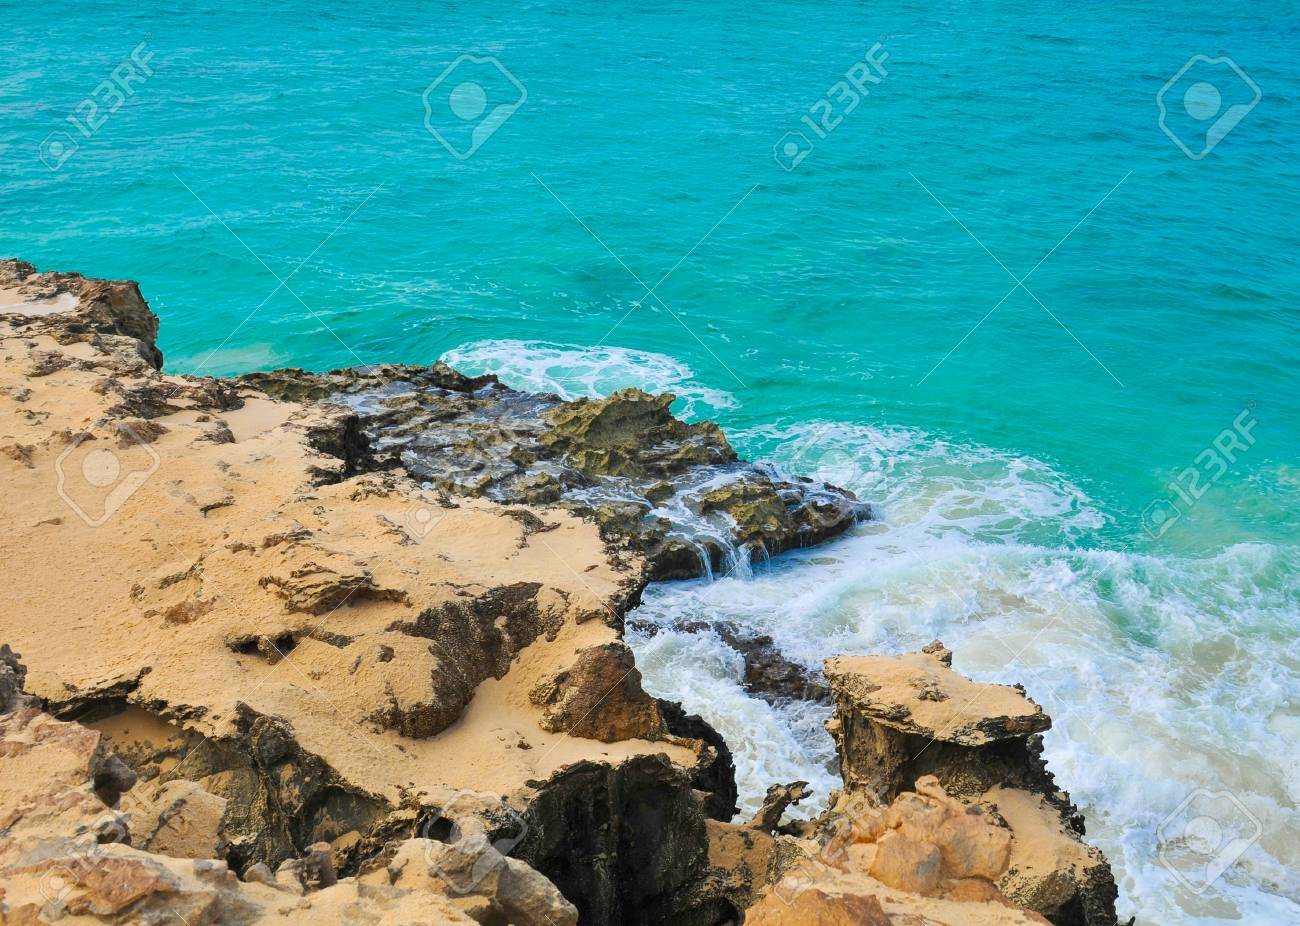 Marine landscape with volcanic rocks in Cape Verde, Africa - 96293188